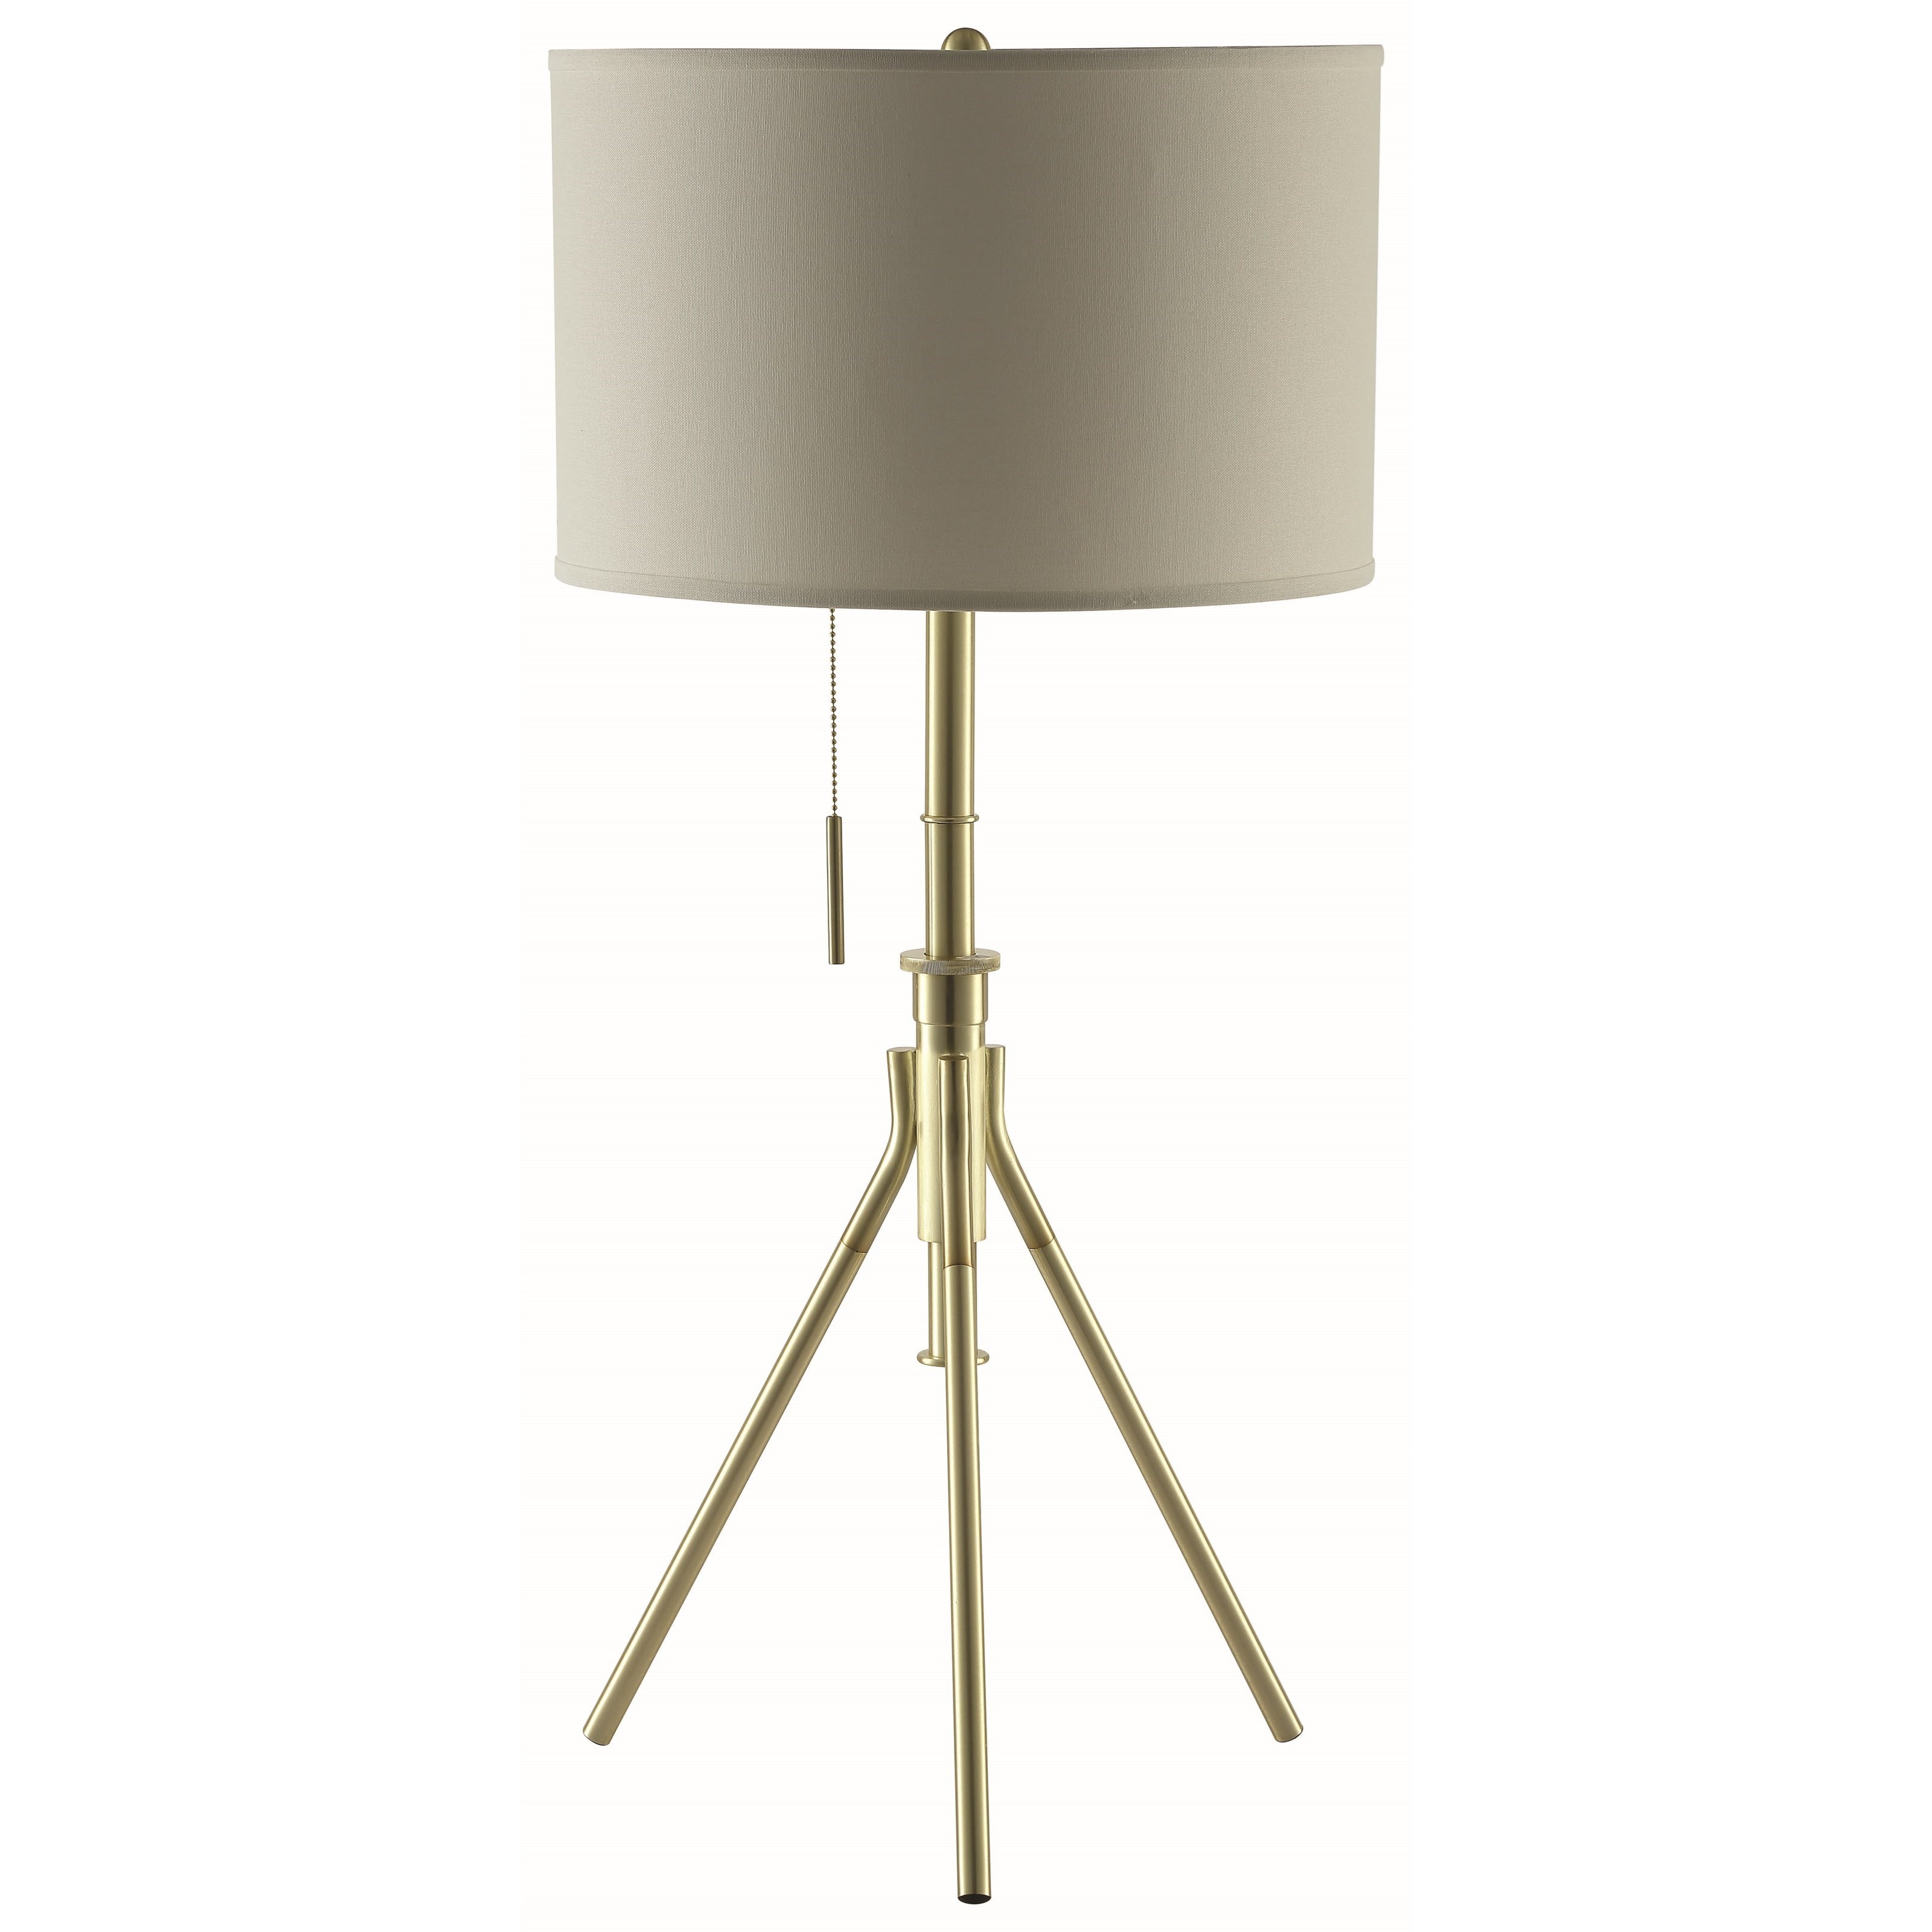 Coaster Table Lamps Table Lamp - Item Number: 902970